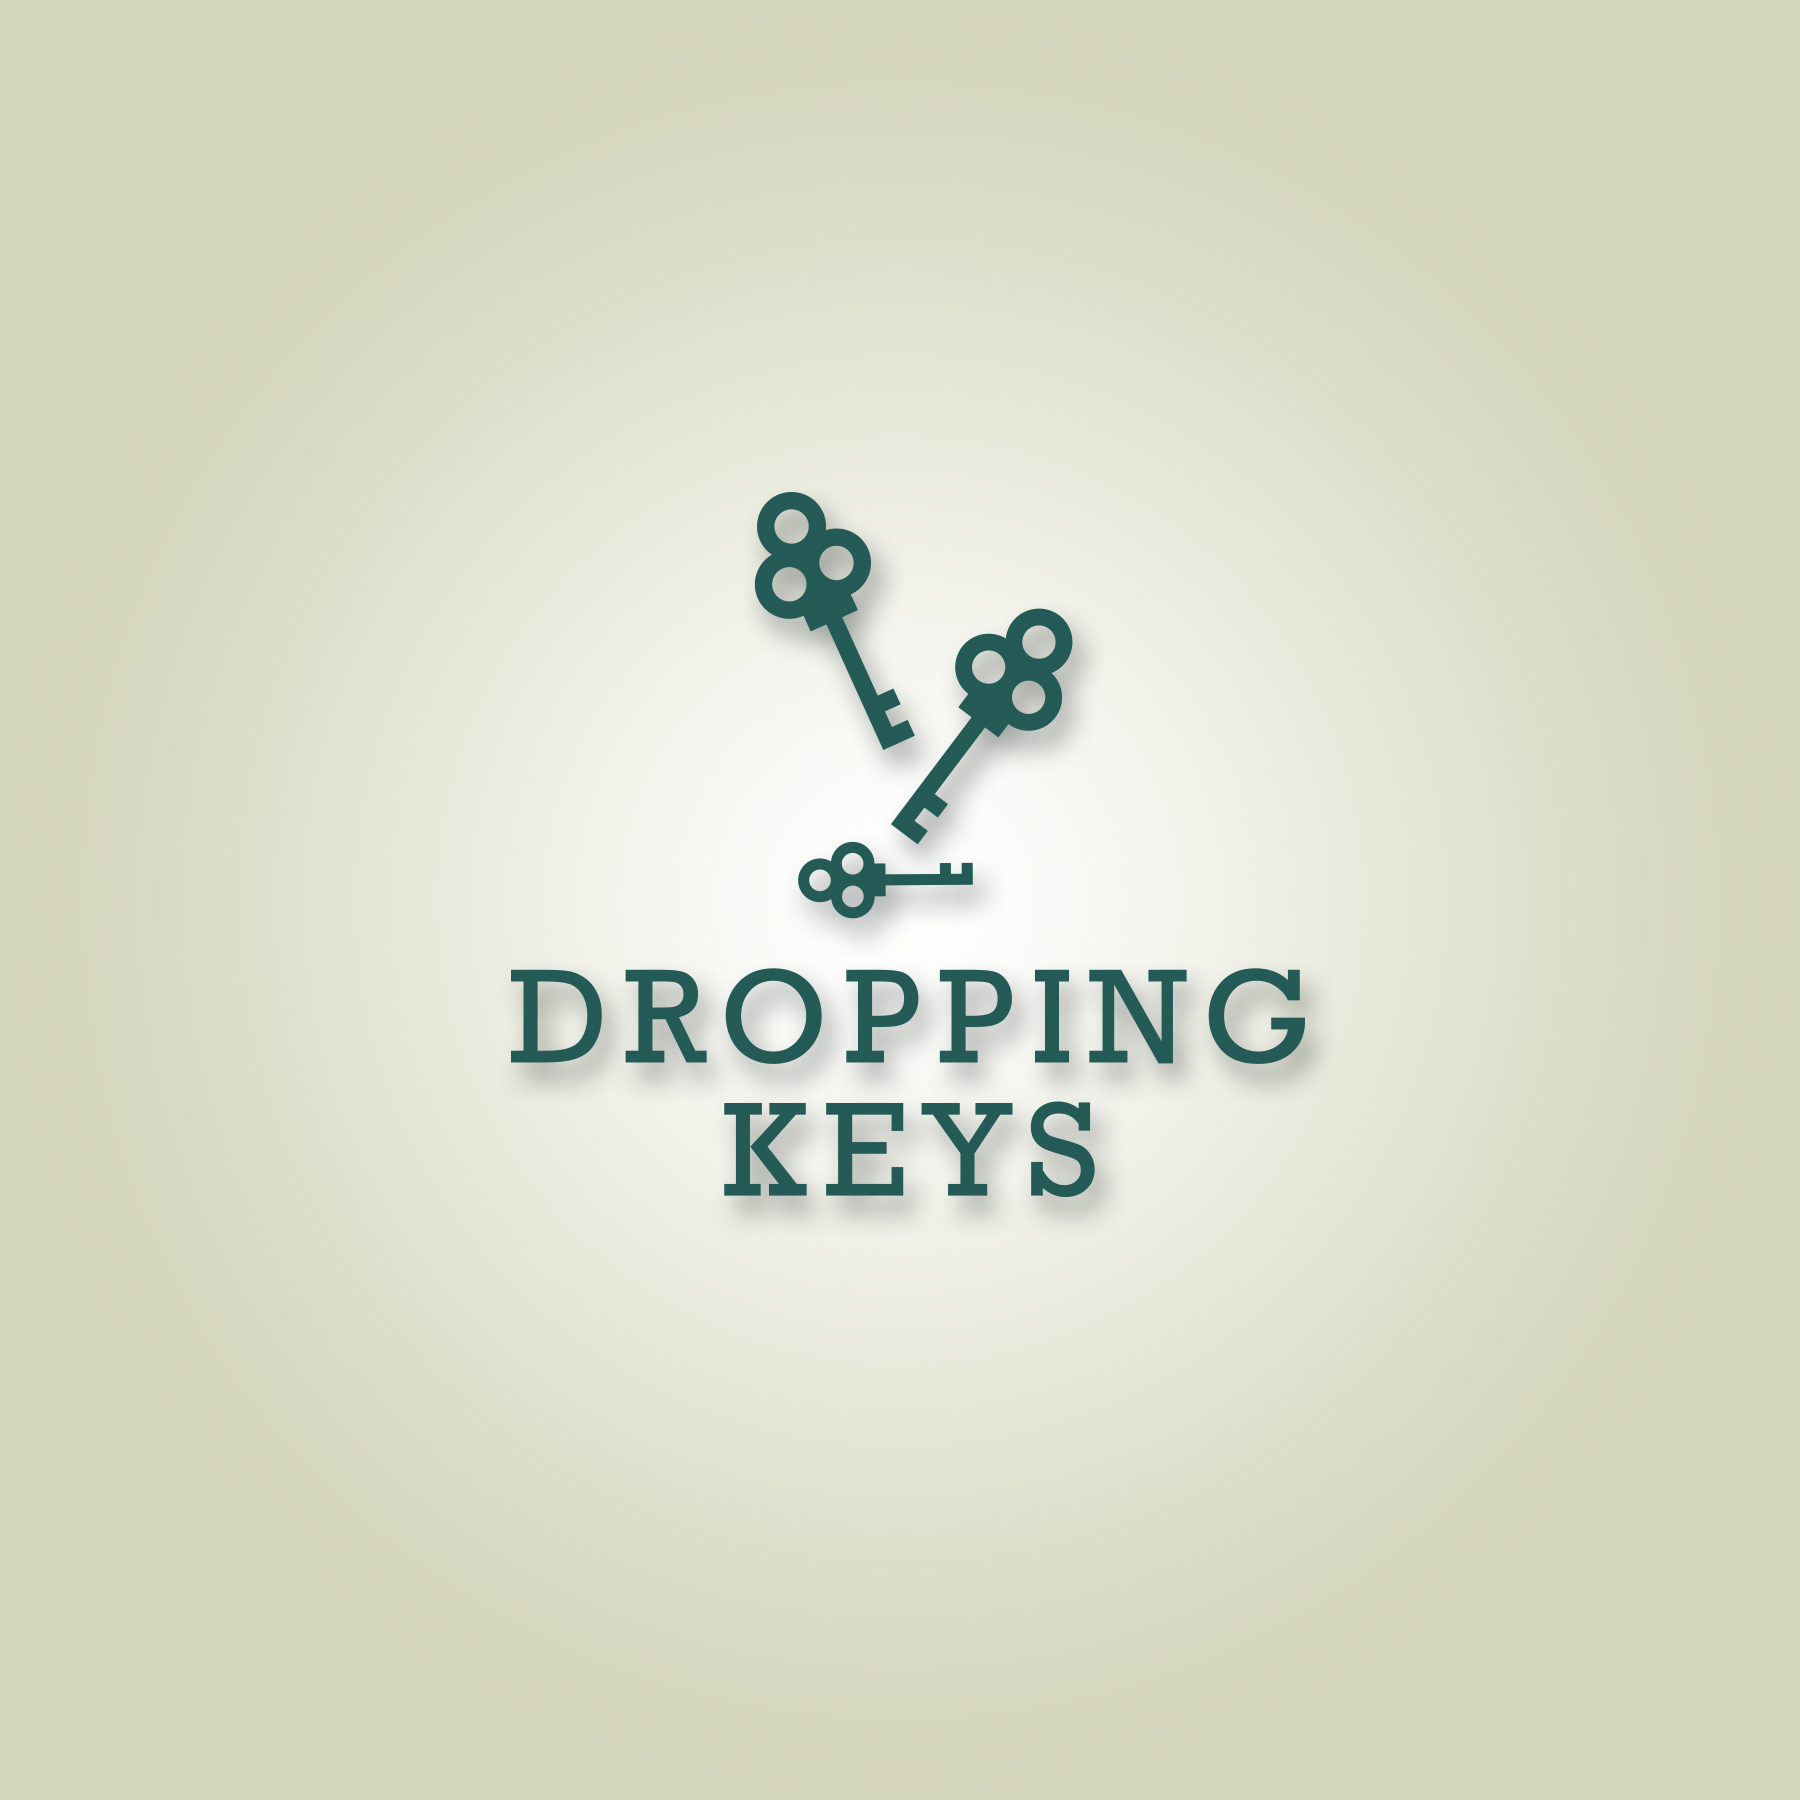 Dropping Keys